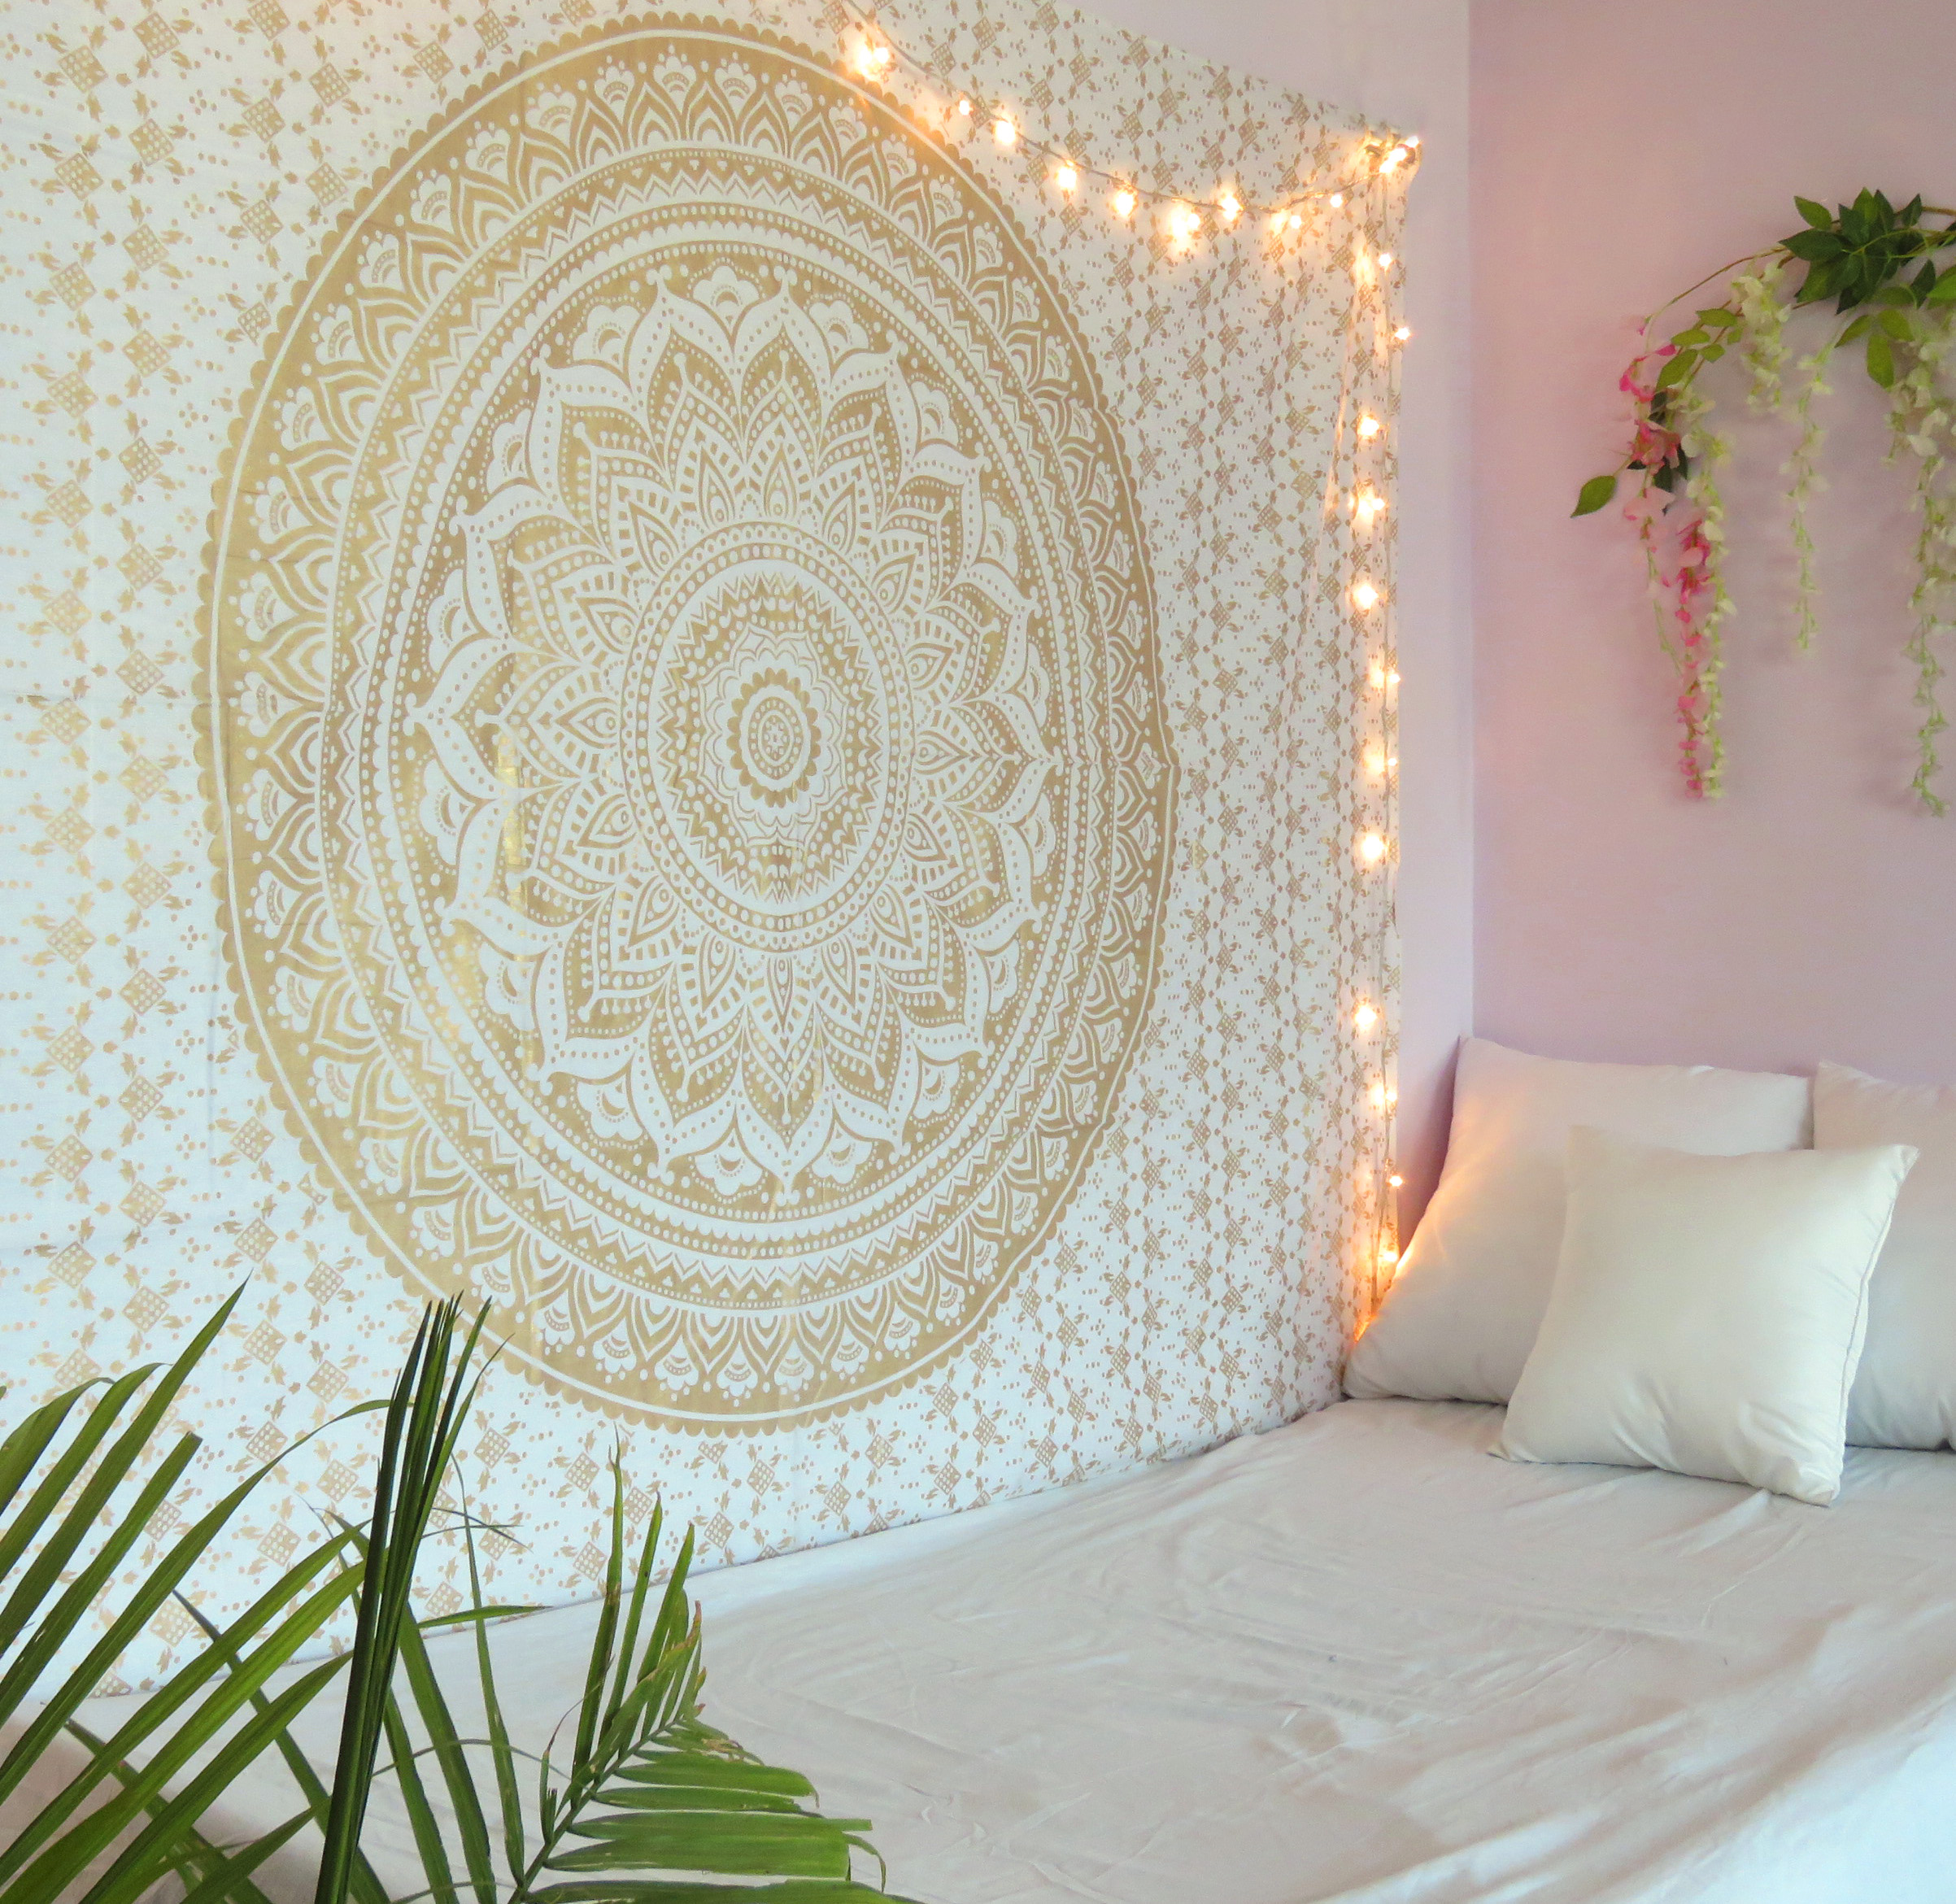 Golden Mandala Tapestry Wall Hanging Twin Size Boho Dorm Room Indian Ombre Tapestries Beach Blankets Picnic Throws Bedspread by Oussum